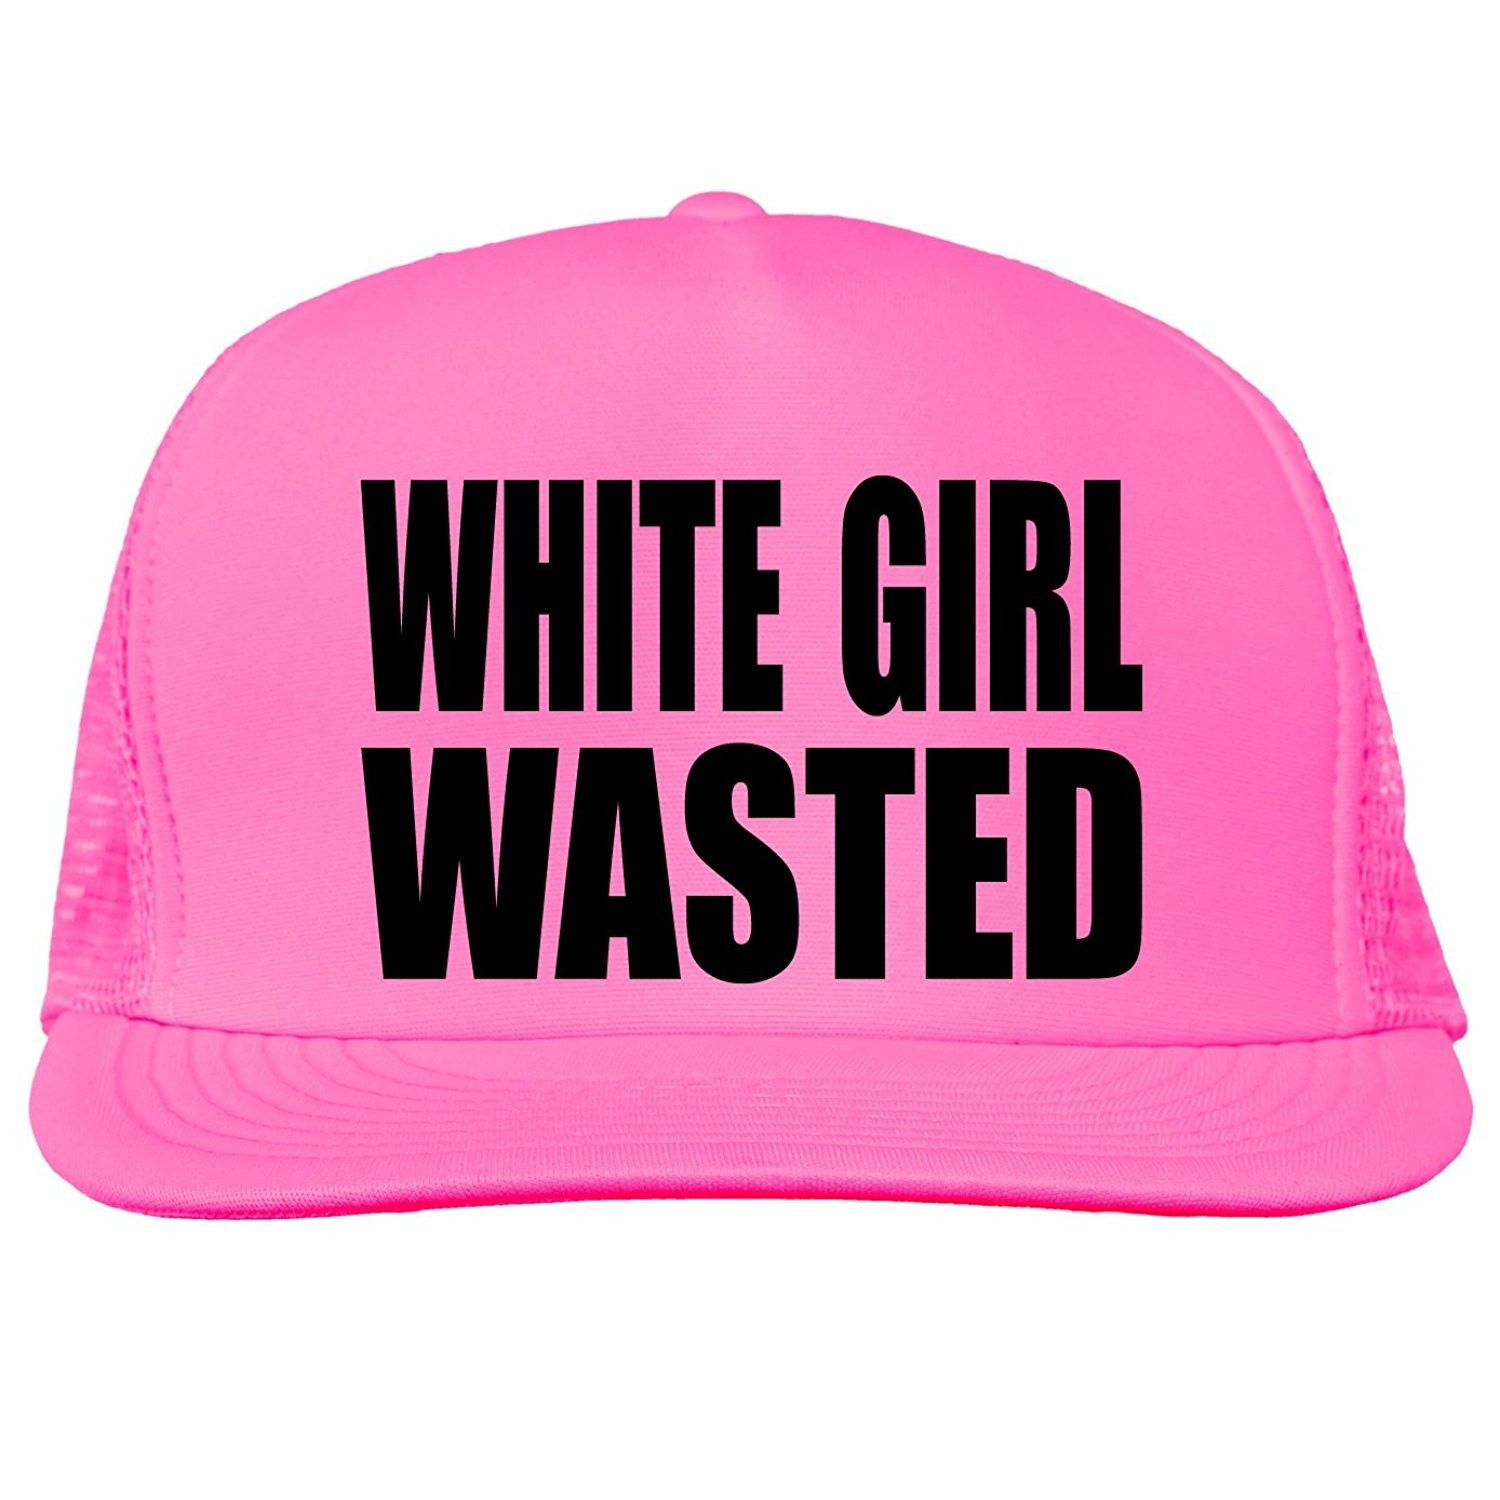 12a3f448cc7 White Girl Wasted Bright neon truckers mesh snap back hat in 6 Bright  Colors - Neon Pink - CK11MJC54HX - Hats   Caps